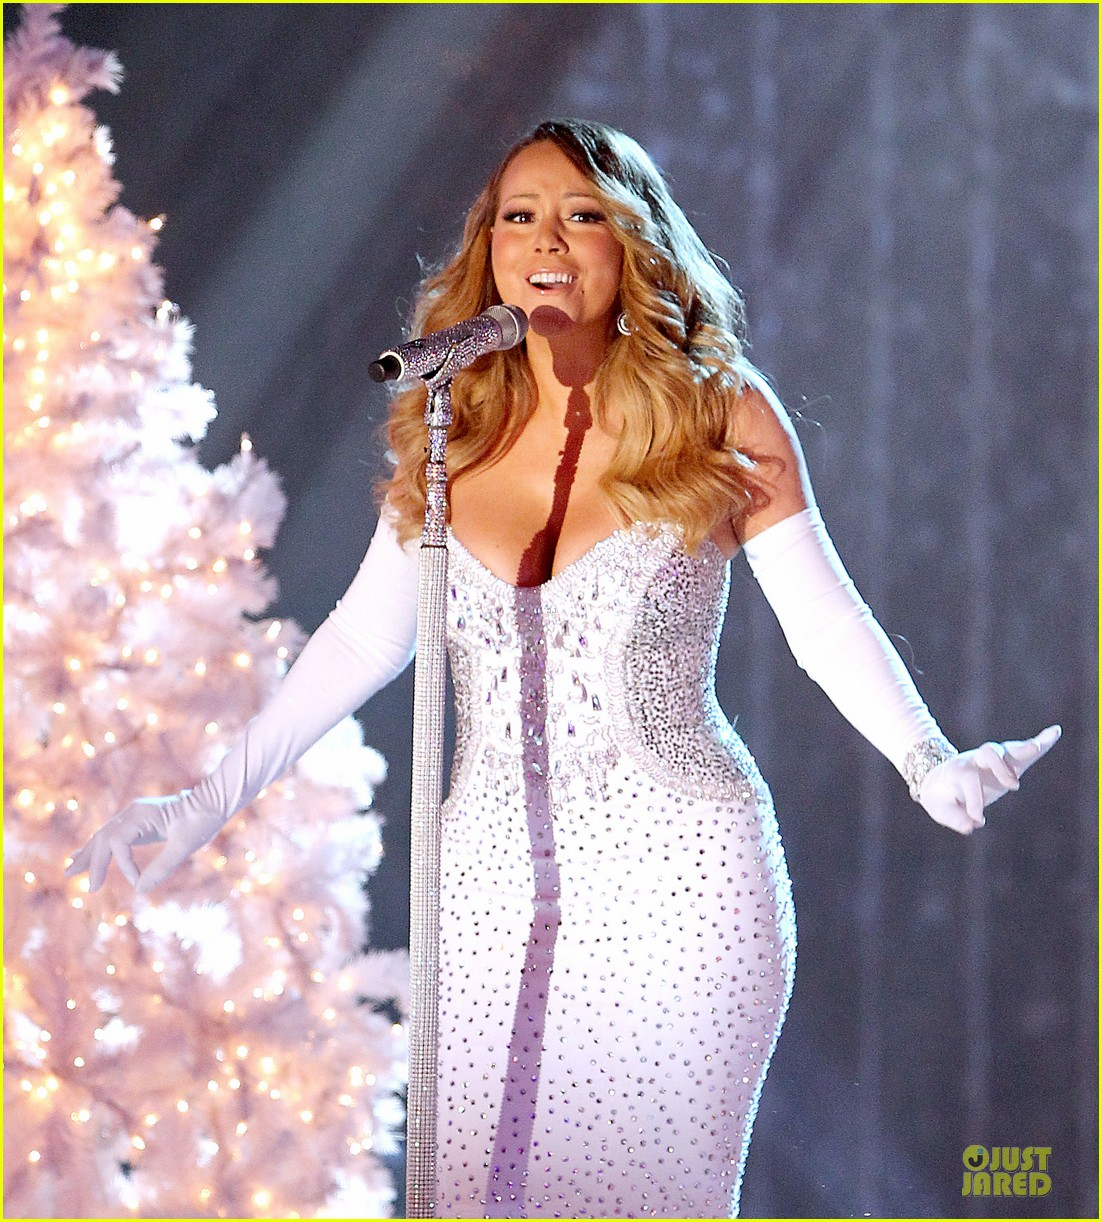 mariah carey rockfeller center christmas tree lighting 2013 performer 07